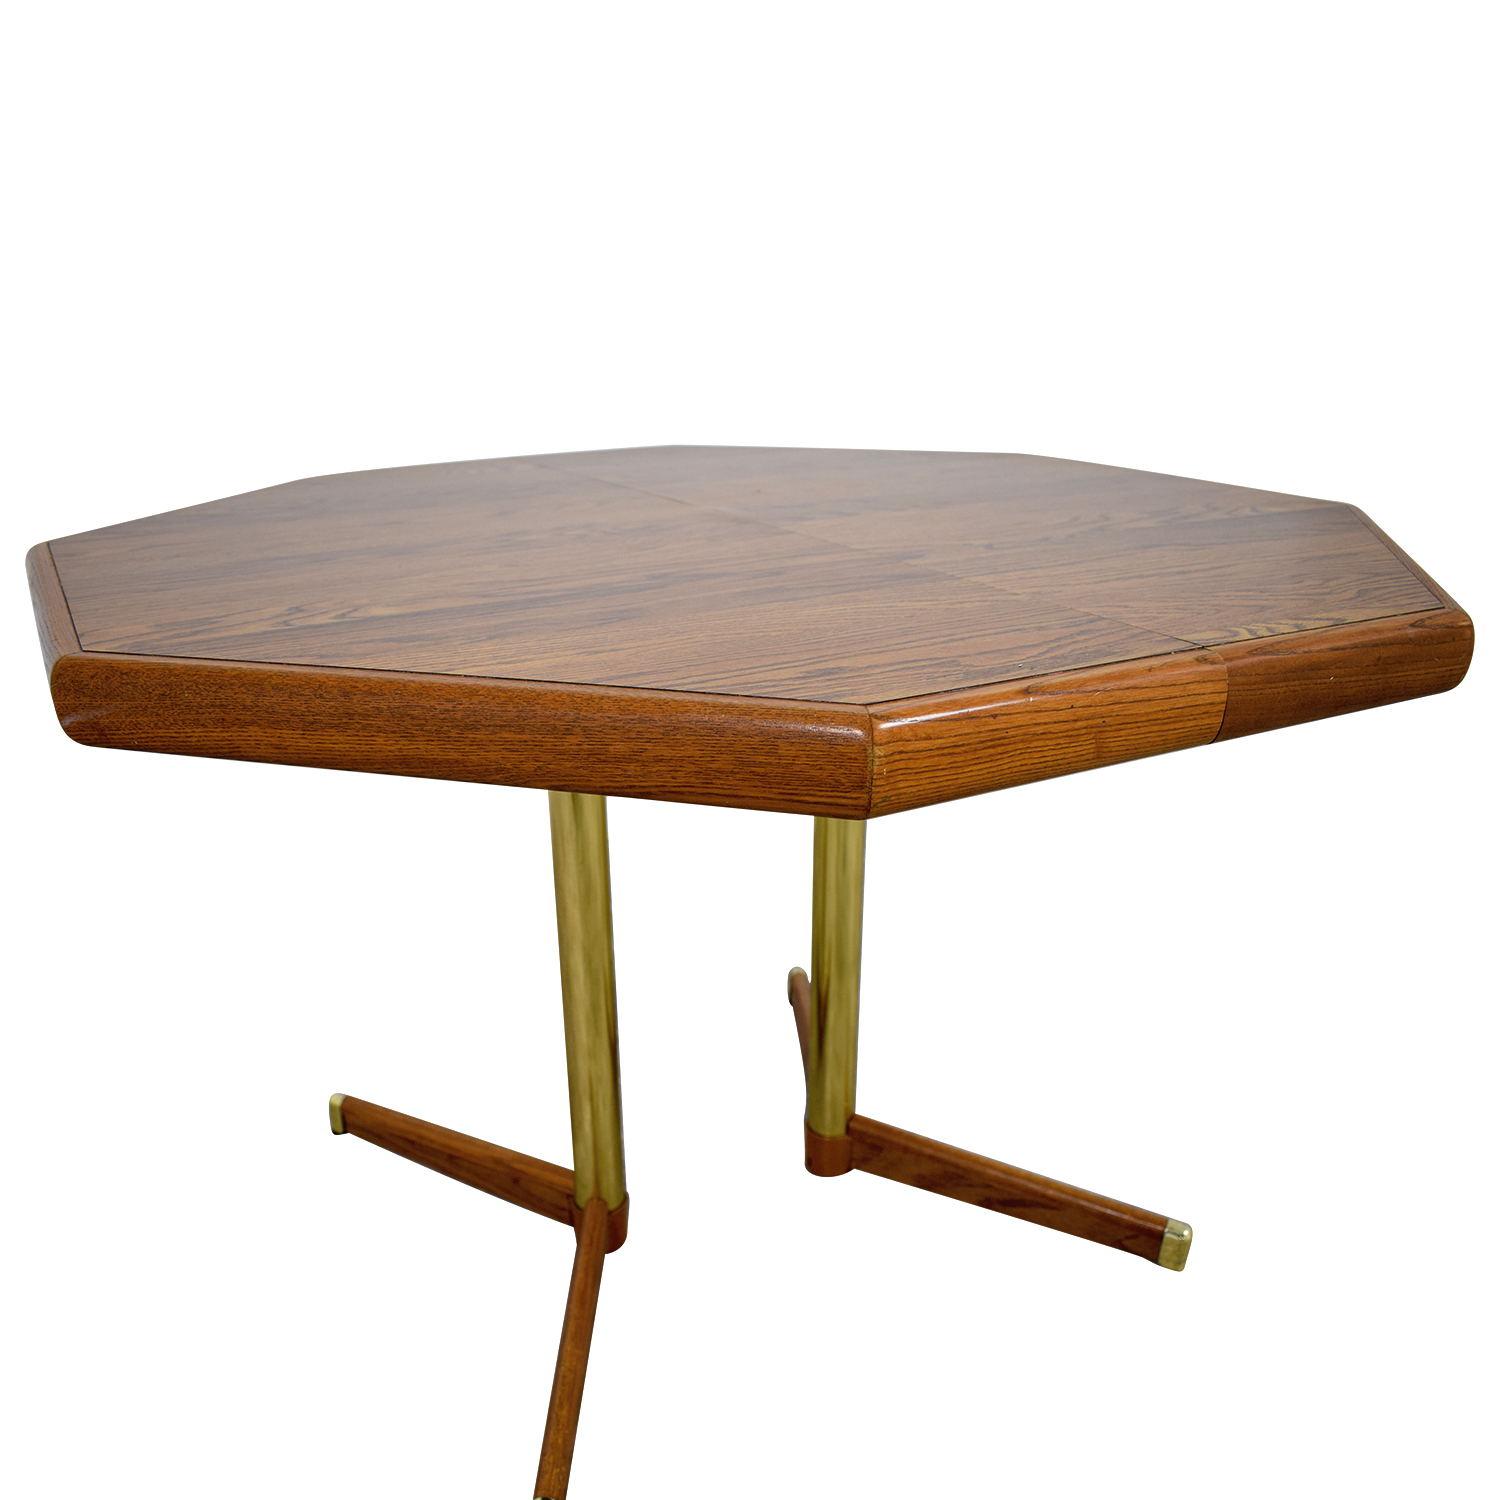 80% OFF - Octagon Kitchen Table with Leaf / Tables